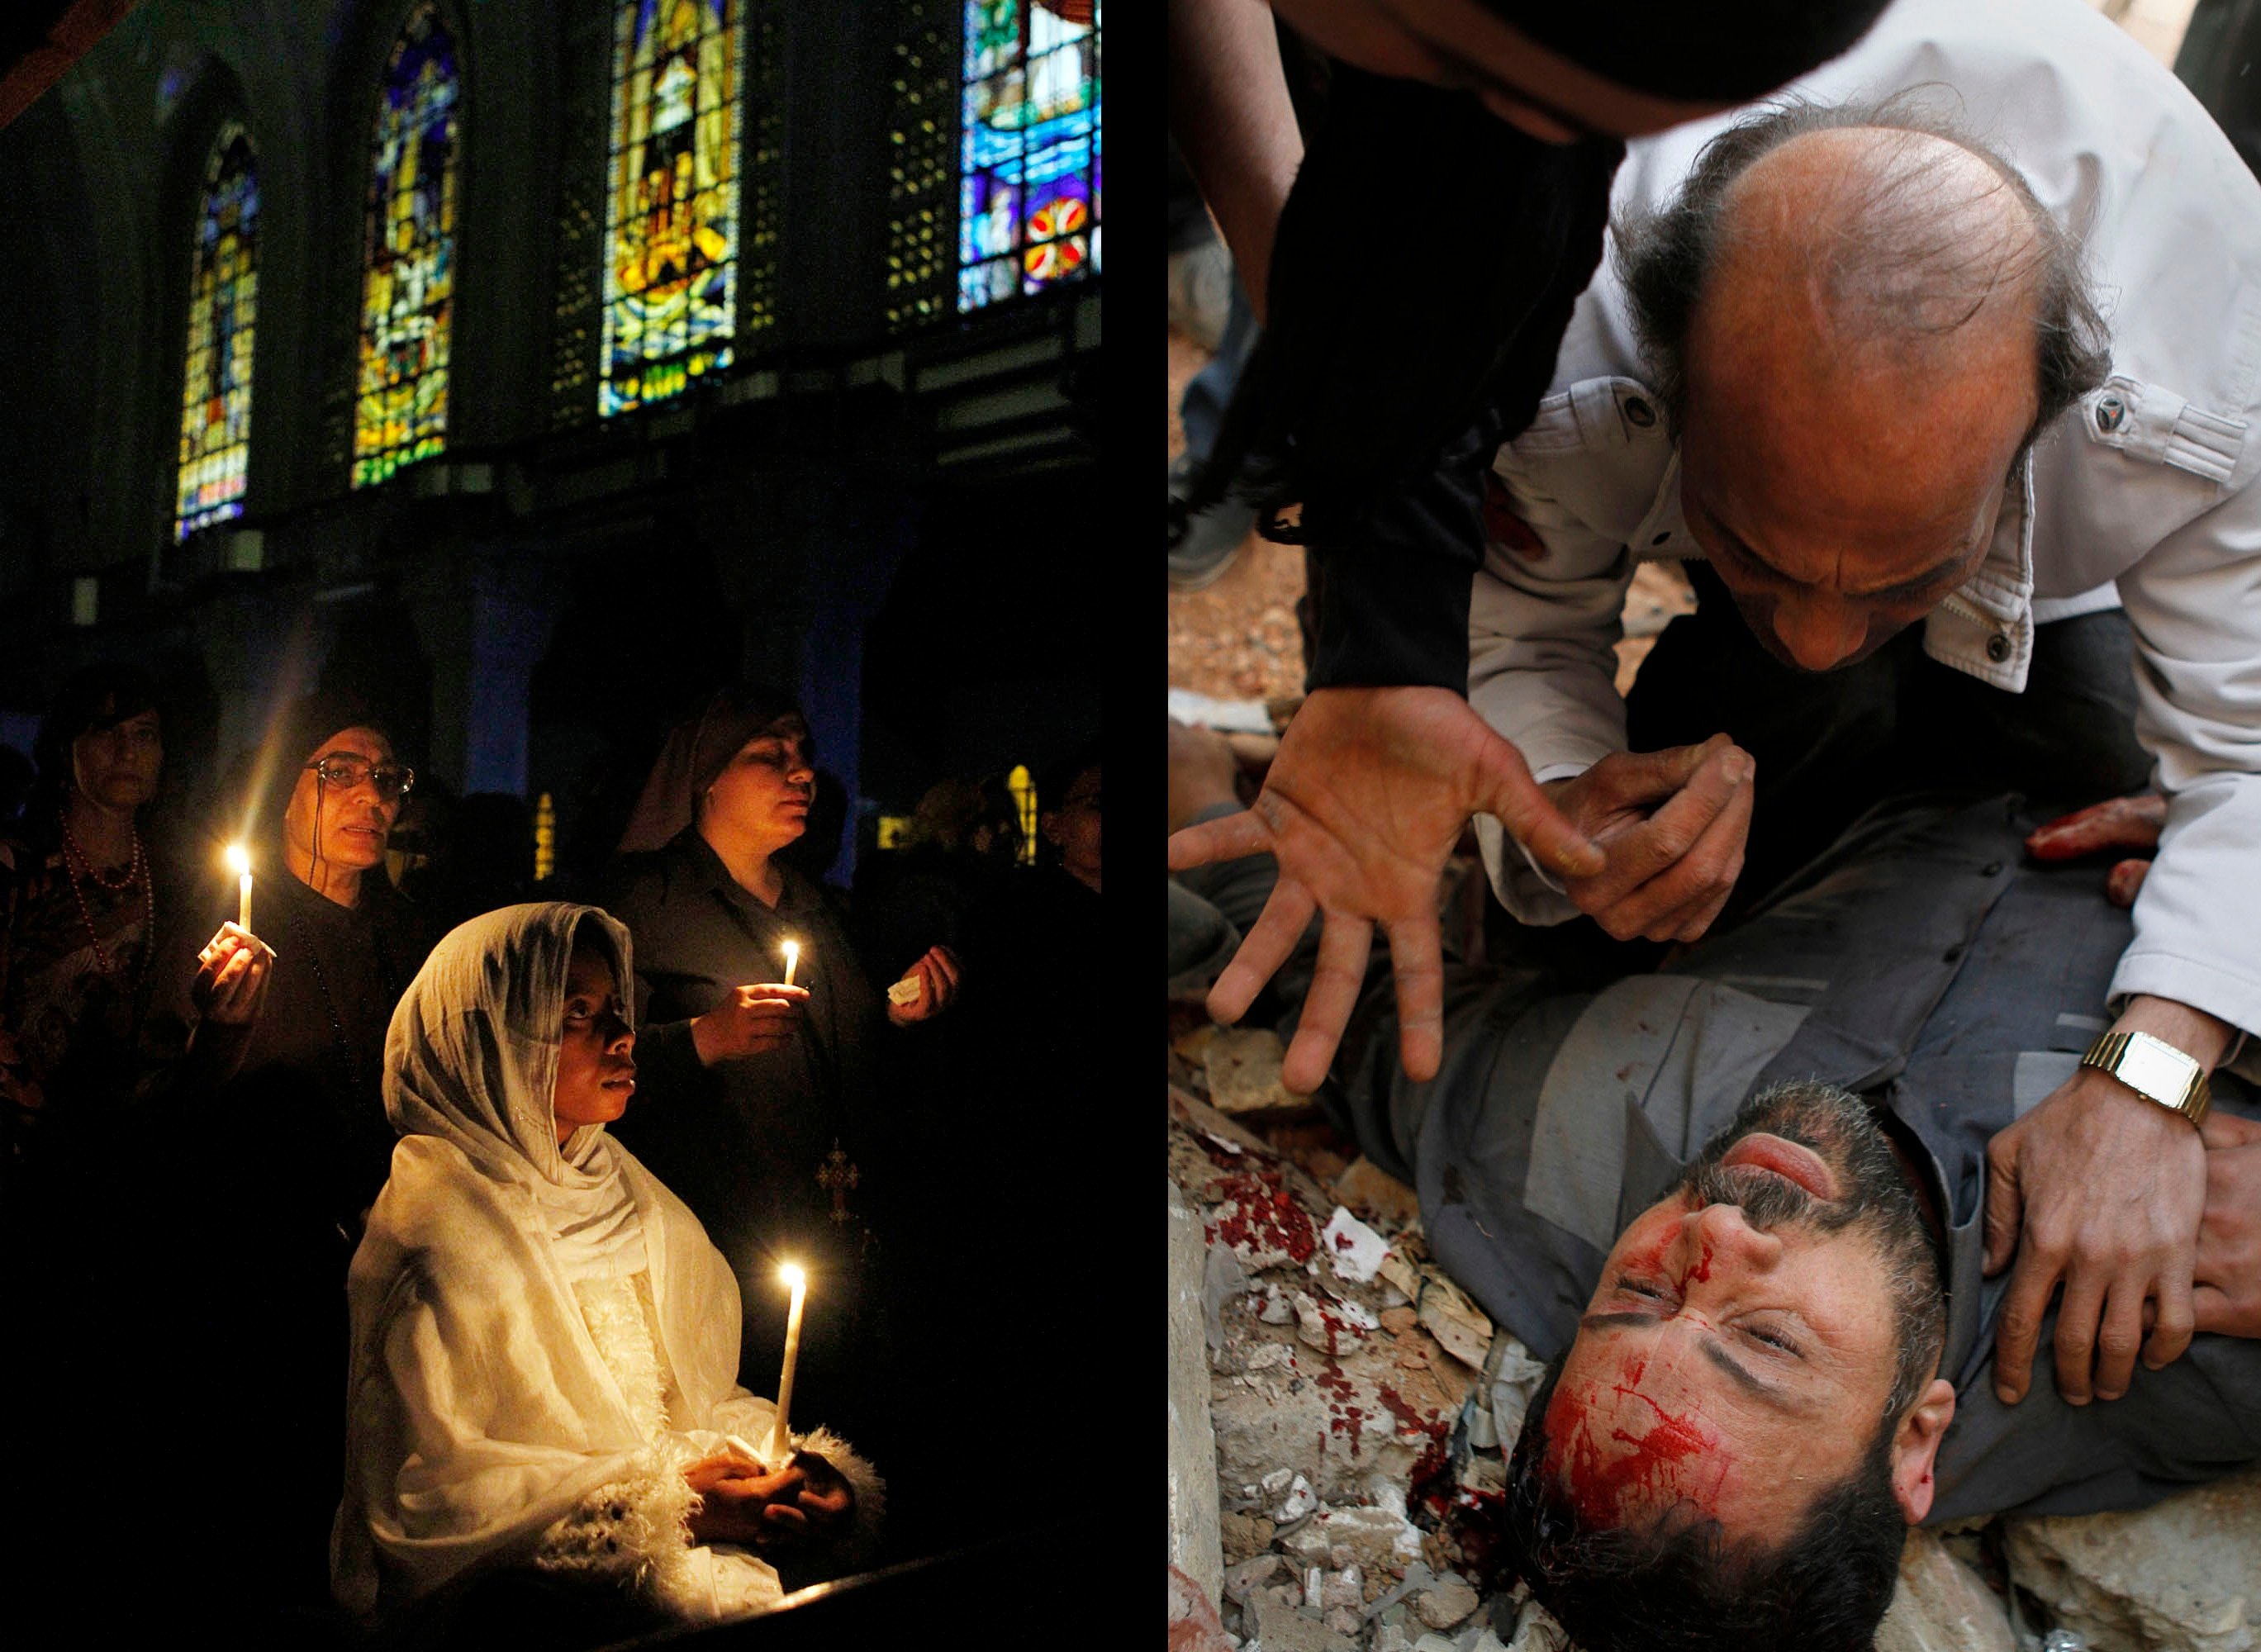 Sabry Khaled  Left: Ethiopian and Egyptian Copts perform the Easter Mass at St. Mark's Cathedral in Cairo on May 4, 2013. Right: A fatally wounded supporter of the Muslim Brotherhood during clashes just outside the Islamist group's headquarters in Cairo. March 22, 2013